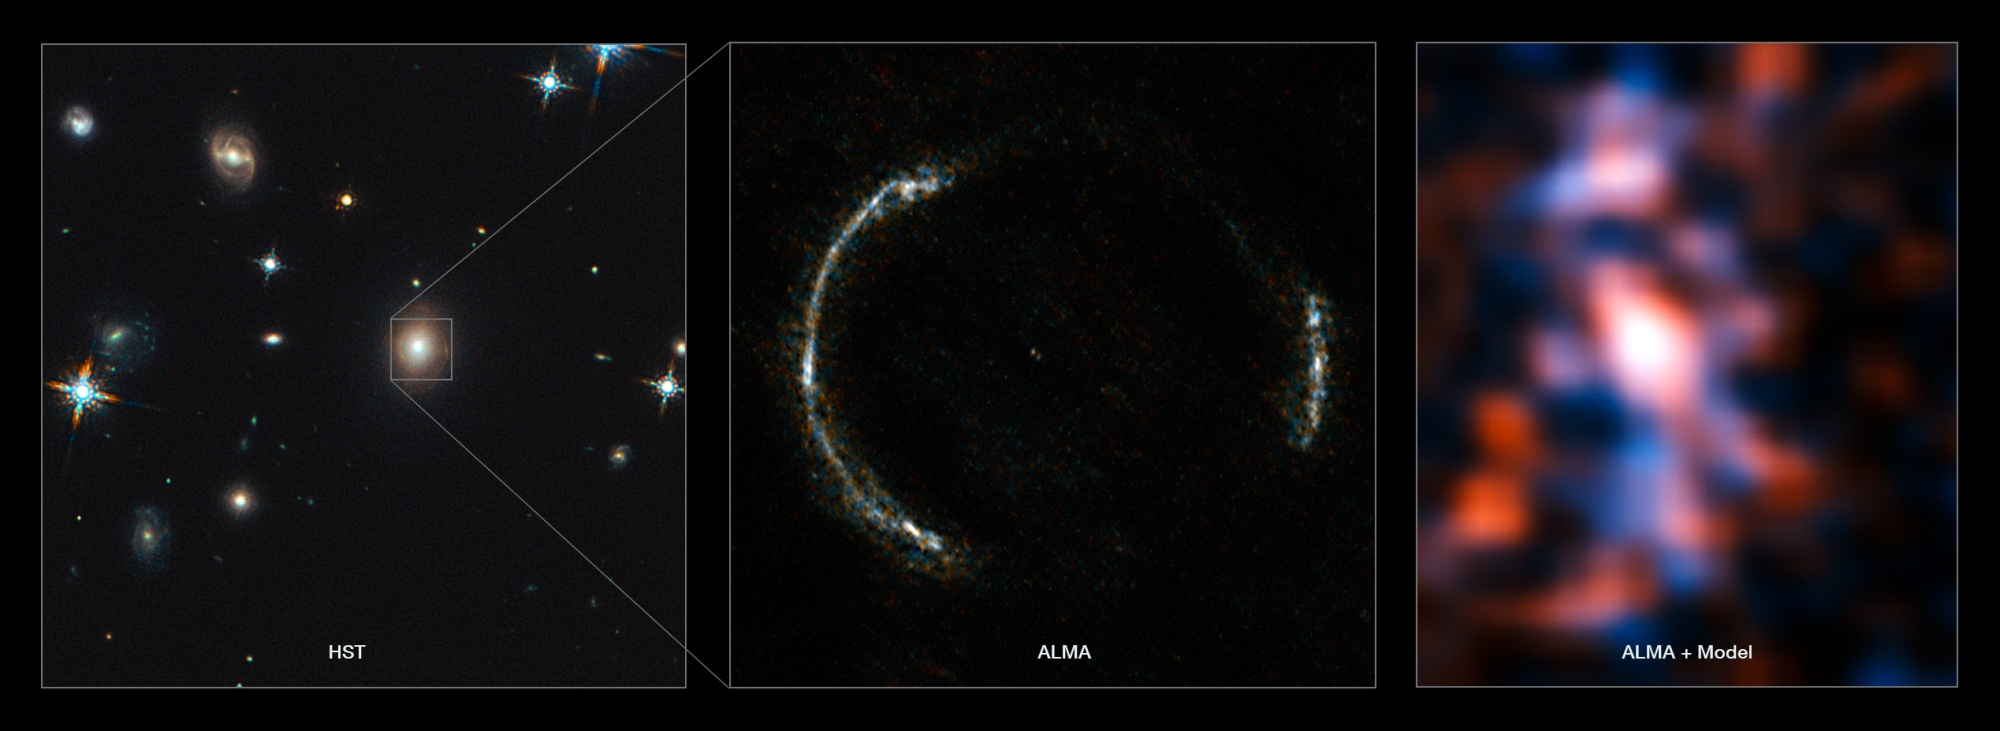 ALMA's Long Baseline Campaign has produced a spectacularly detailed image of a distant galaxy being gravitationally lensed, revealing star-forming regions — something that has never been seen before at this level of detail in a galaxy so remote. The new observations are far more detailed than any previously made of such a distant galaxy, including those made using the NASA/ESA Hubble Space Telescope, and reveal clumps of star formation in the galaxy equivalent to giant versions of the Orion Nebula. The left panel shows the foreground lensing galaxy (observed with Hubble), and the gravitationally lensed galaxy SDP.81, which forms an almost perfect Einstein Ring, is hardly visible. The middle image shows the sharp ALMA image of the Einstein ring, with the foreground lensing galaxy being invisible to ALMA. The resulting reconstructed image of the distant galaxy (right) using sophisticated models of the magnifying gravitational lens, reveal fine structures within the ring that have never been seen before: Several dust clouds within the galaxy, which are thought to be giant cold molecular clouds, the birthplaces of stars and planets.